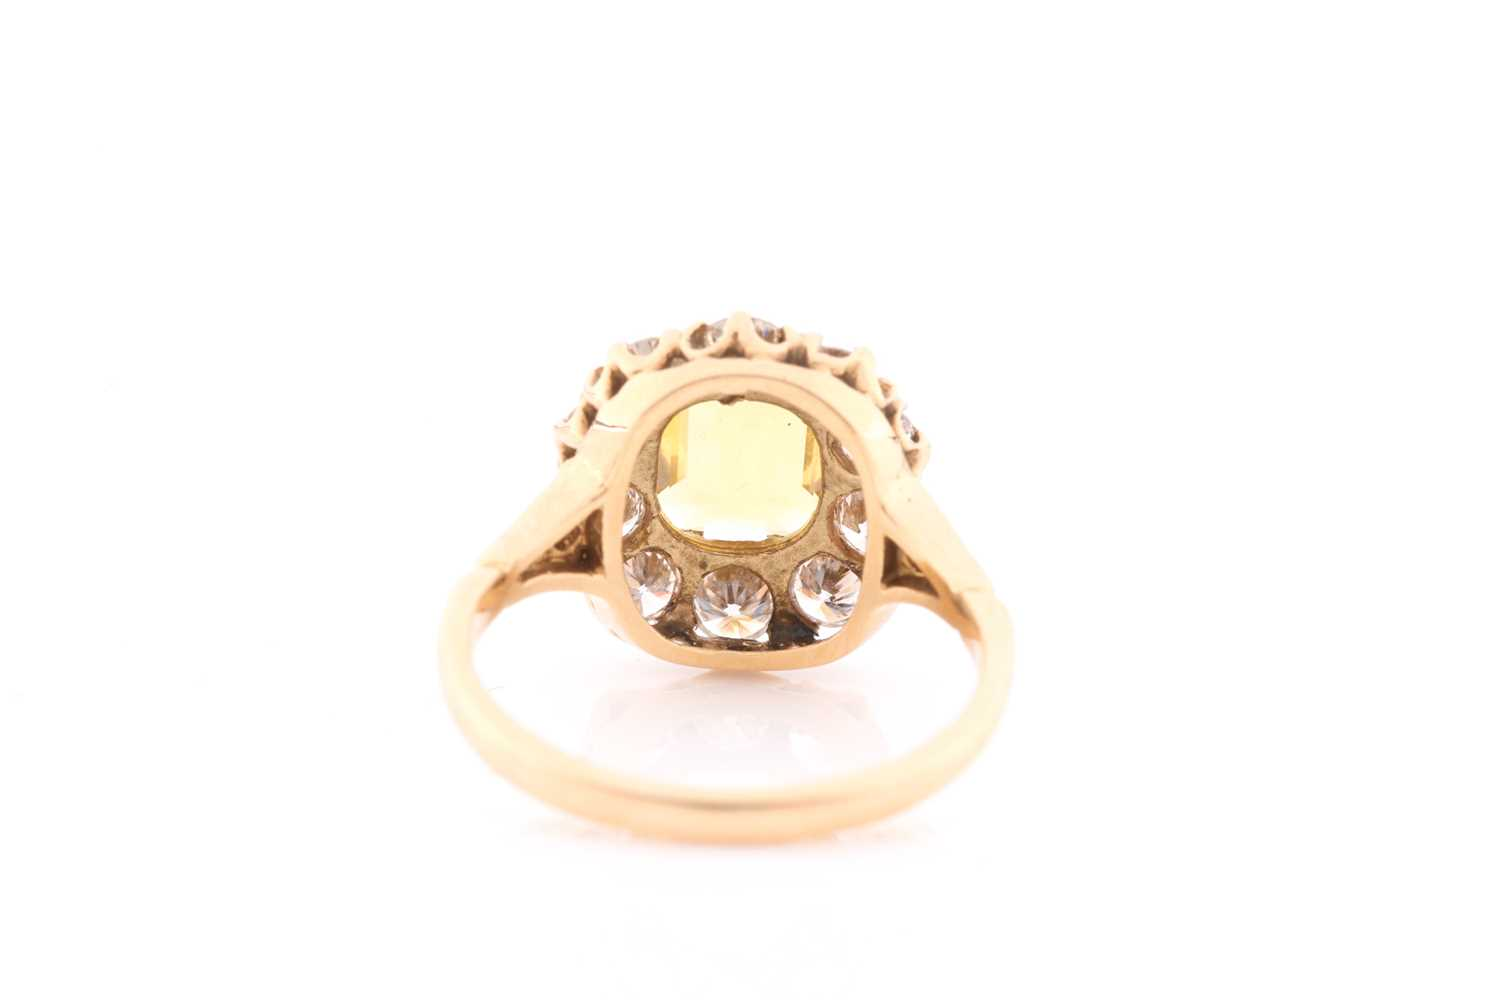 An 18ct yellow gold, diamond, and yellow sapphire dress ring, set with an emerald-cut sapphire of - Image 4 of 4